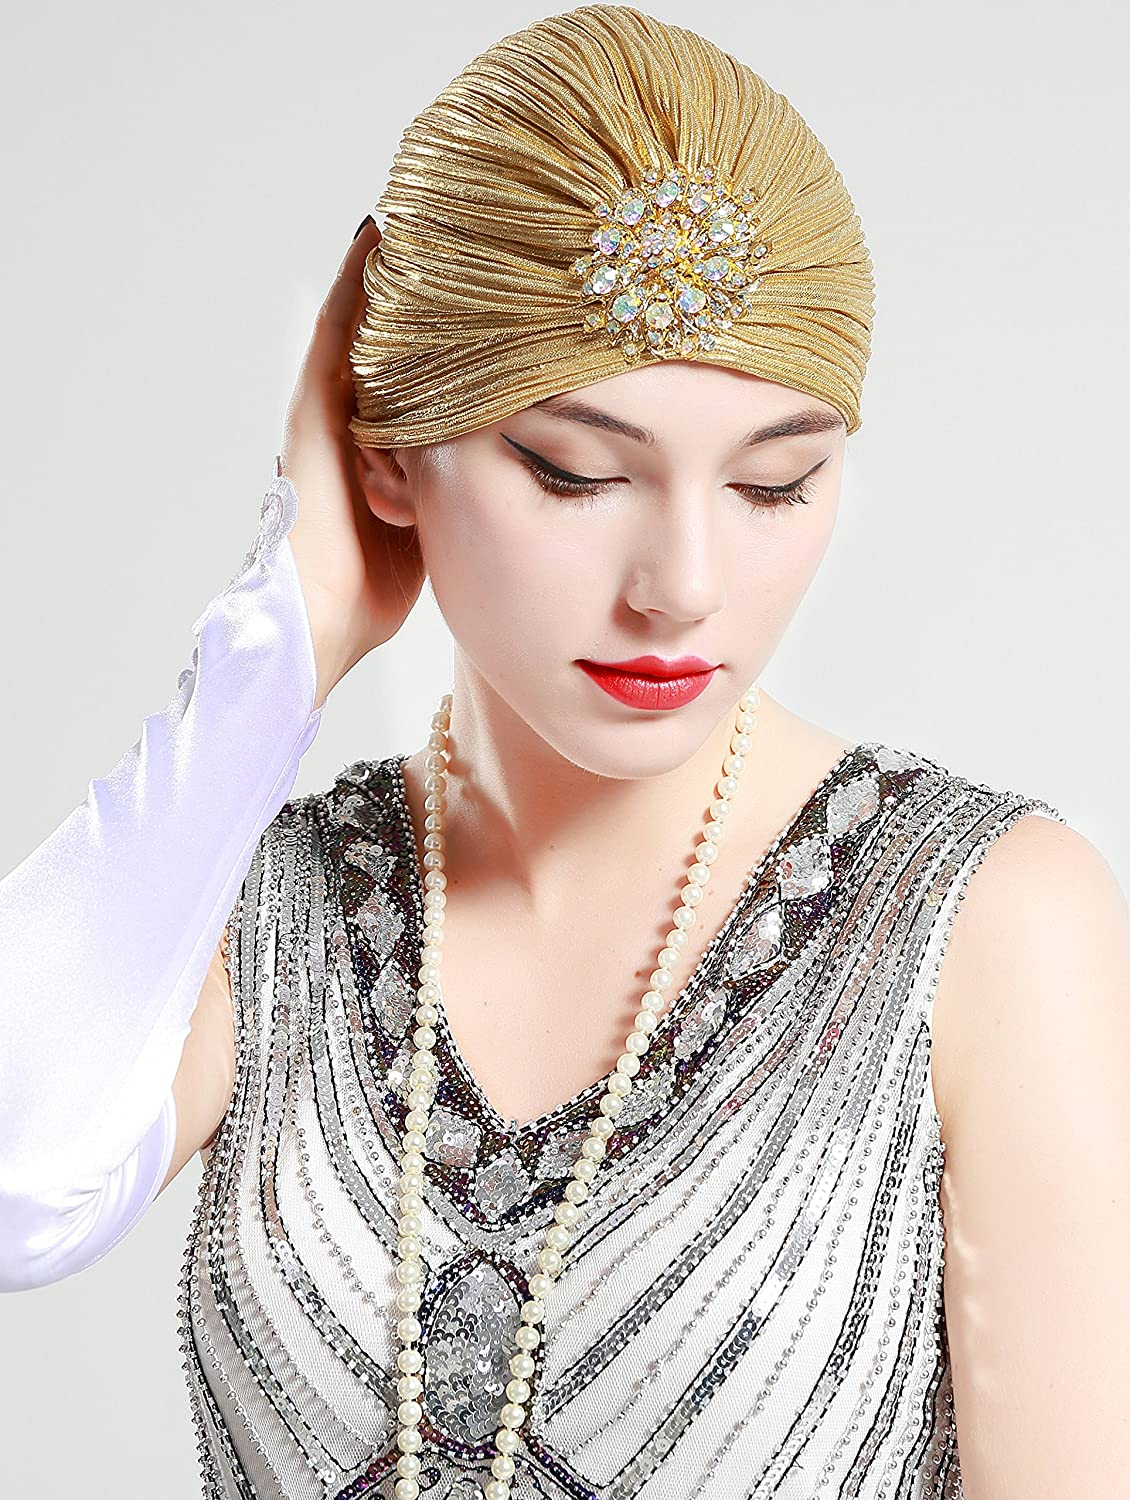 1920s Style Hats BABEYOND Womens Ruffle Turban Hat Knit Turban Headwraps with Detachable Crystal Brooch for 1920s Gatsby Party $11.99 AT vintagedancer.com